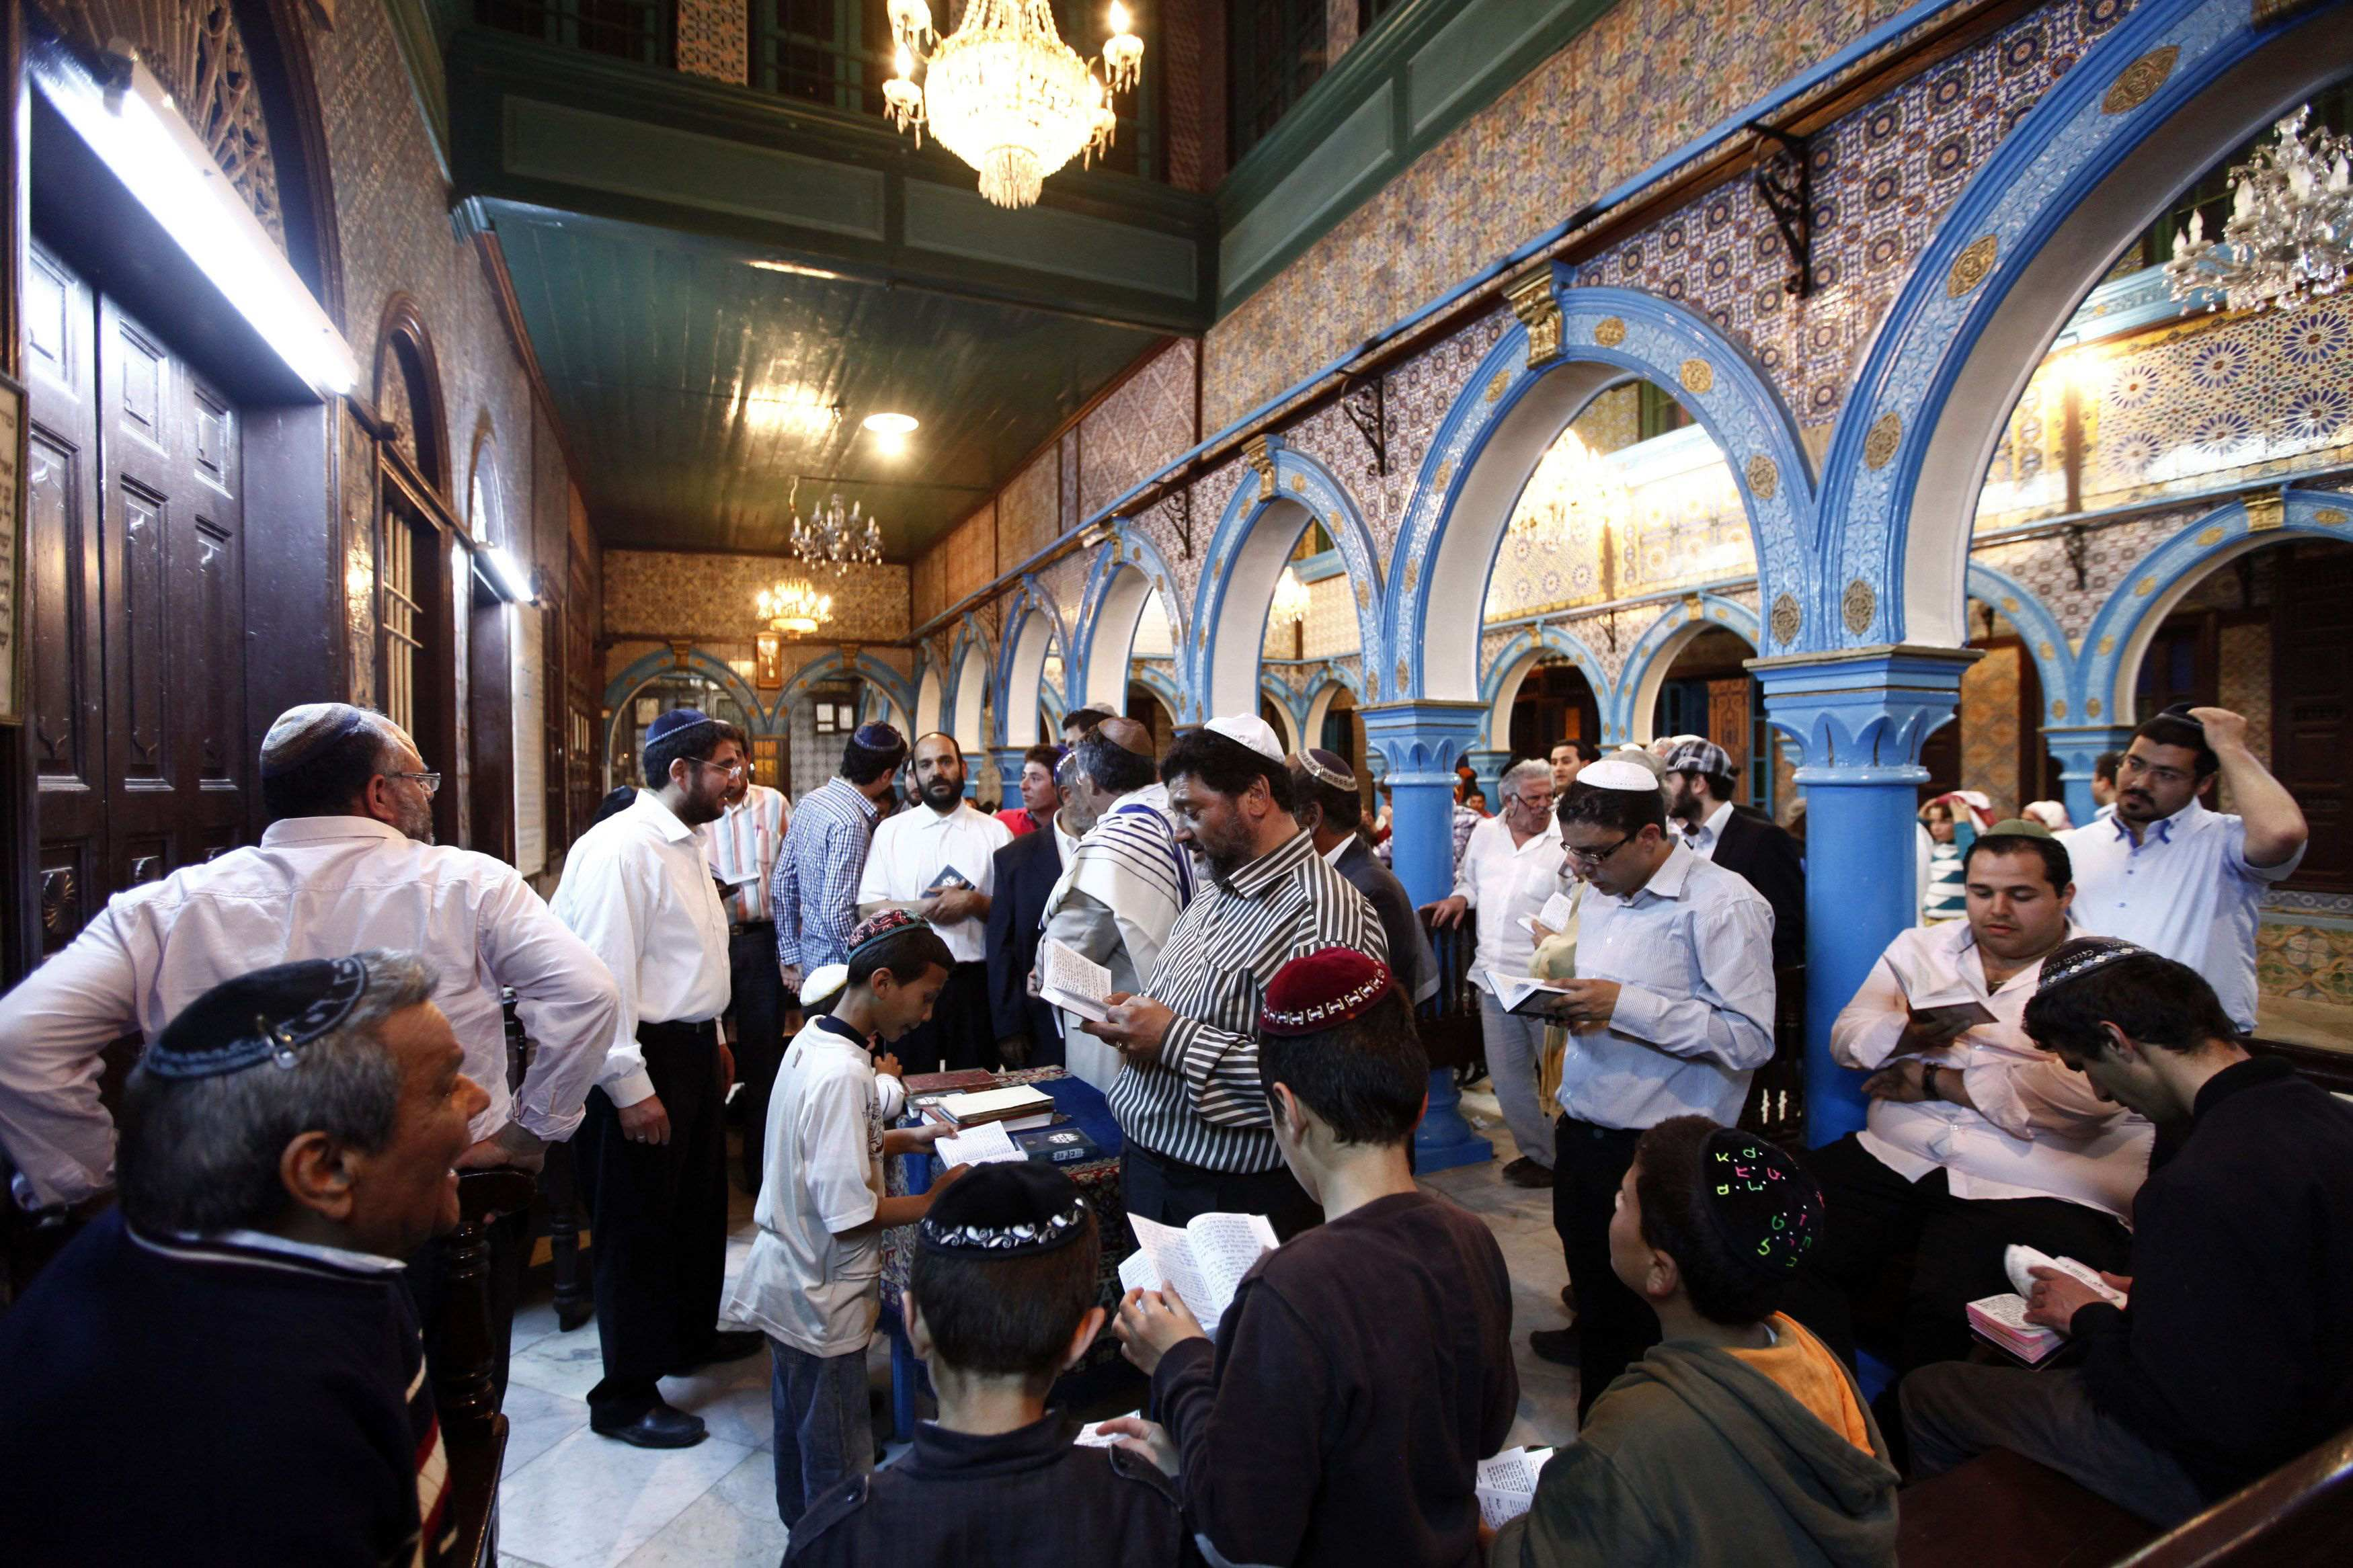 Jewish men pray inside the blue-tiled El Ghriba synagogue on the Tunisian island of Djerba following a wedding ceremony